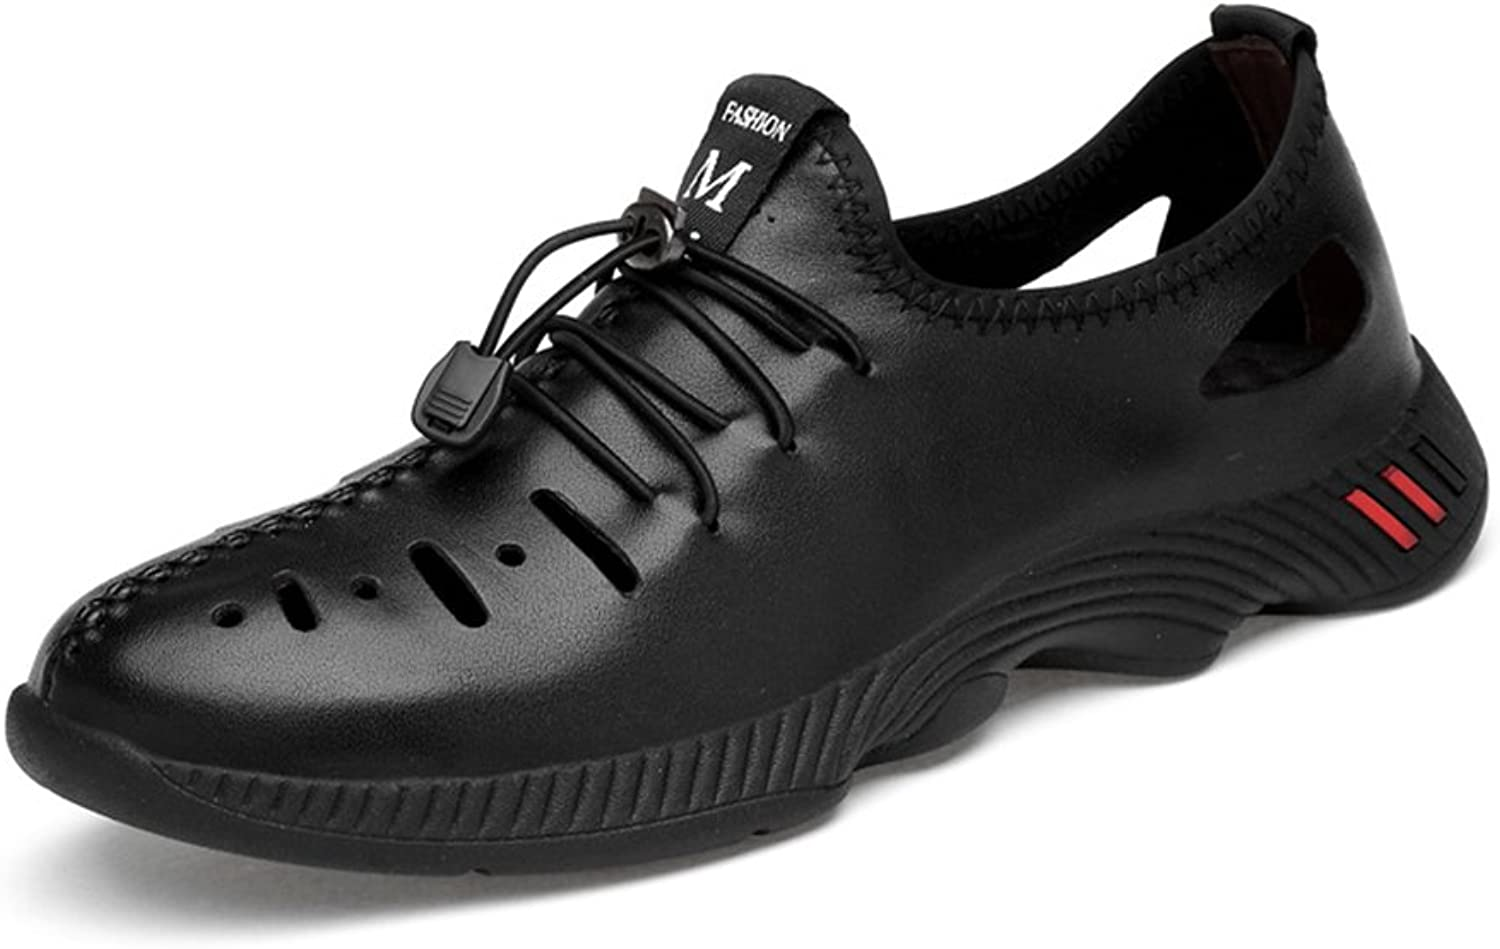 Men's Casual shoes 2018 Summer Fall Mens Tide shoes Genuine Leather Hole shoes Hollow Leisure shoes Large Size 35-47 (color   Black, Size   46)